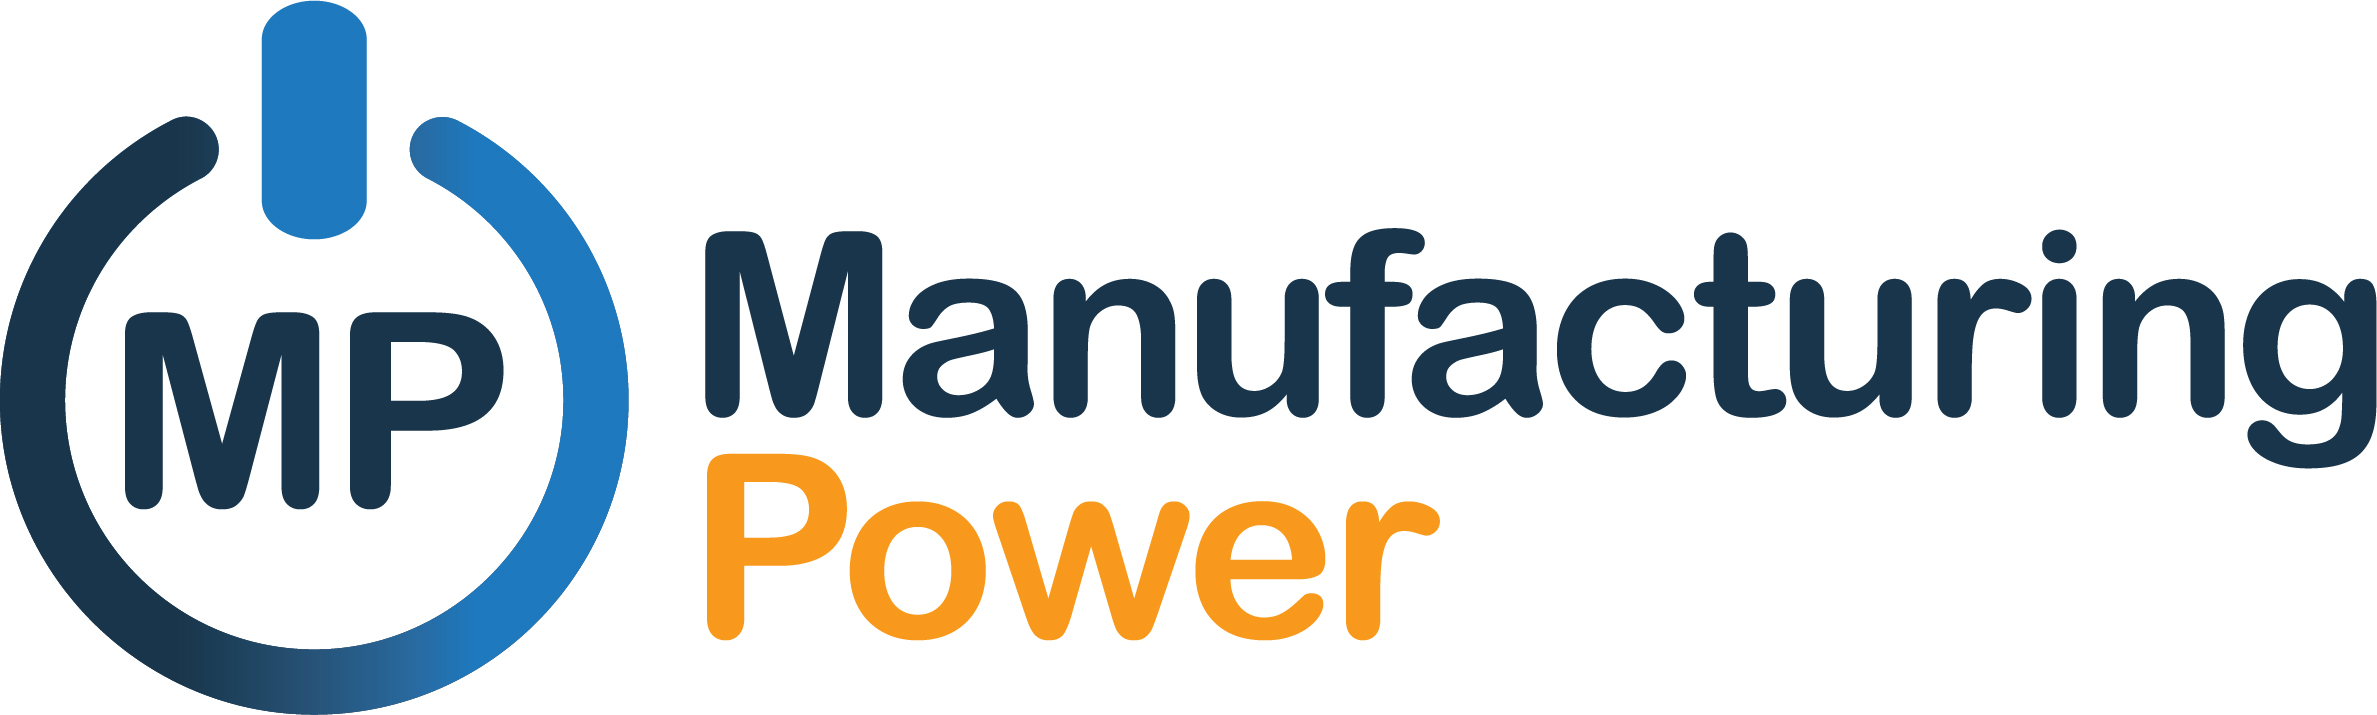 ManufacturingPower Identifies SKUs in Danger from COVID-19 Supply Chain Disruption